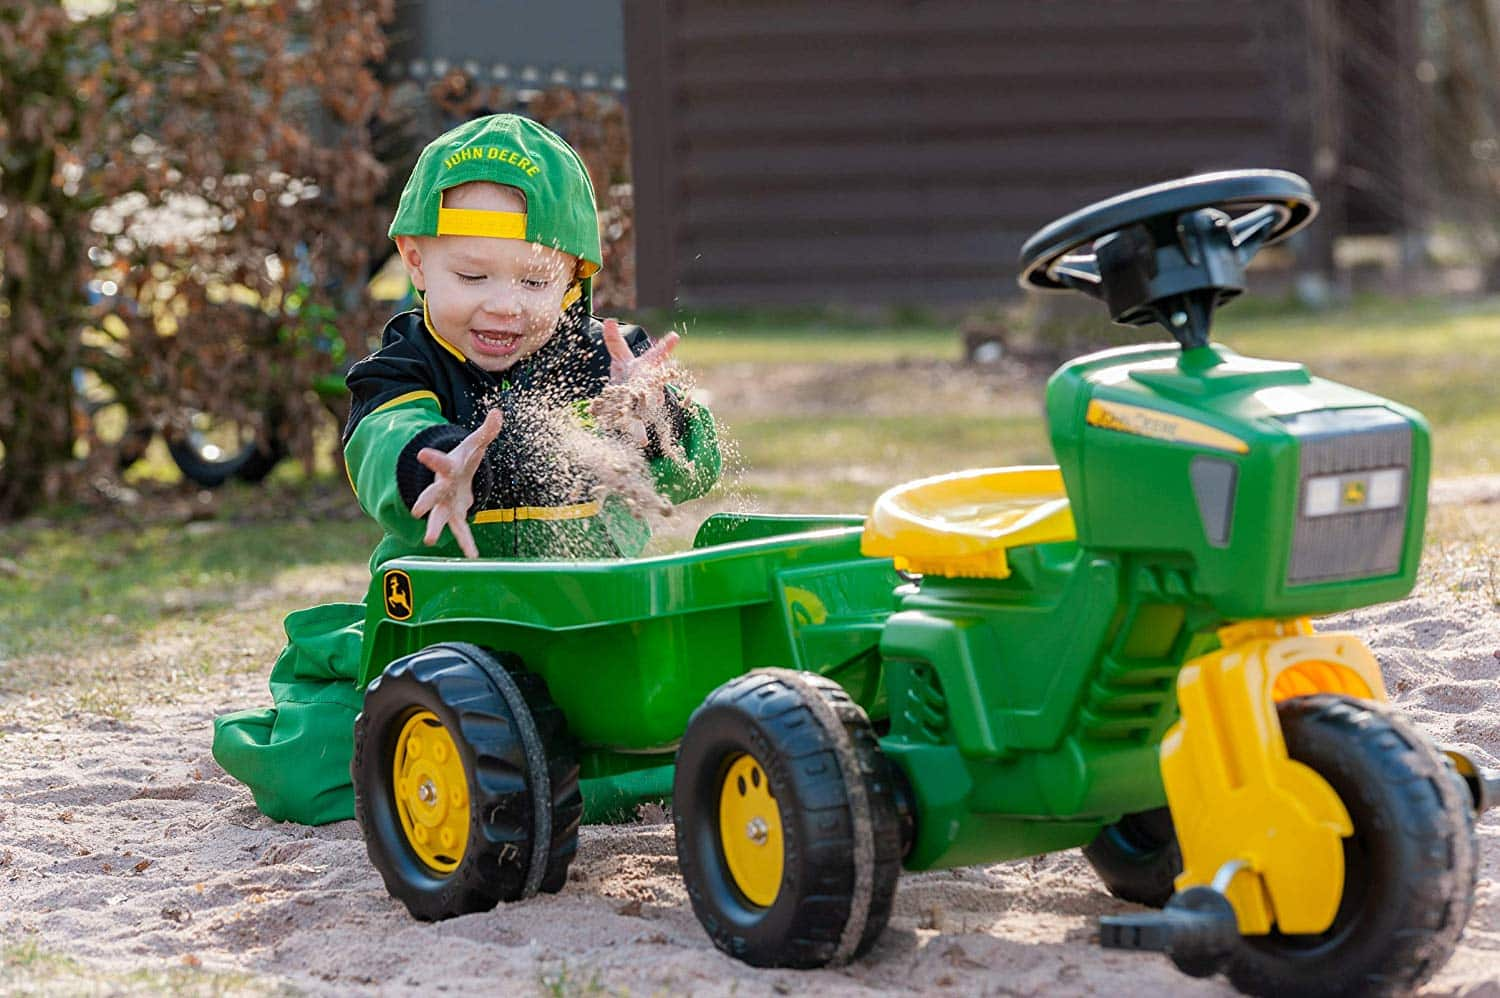 Top 10 Best Pedal Tractors in 2020 Reviews | Kid Riding Tractors